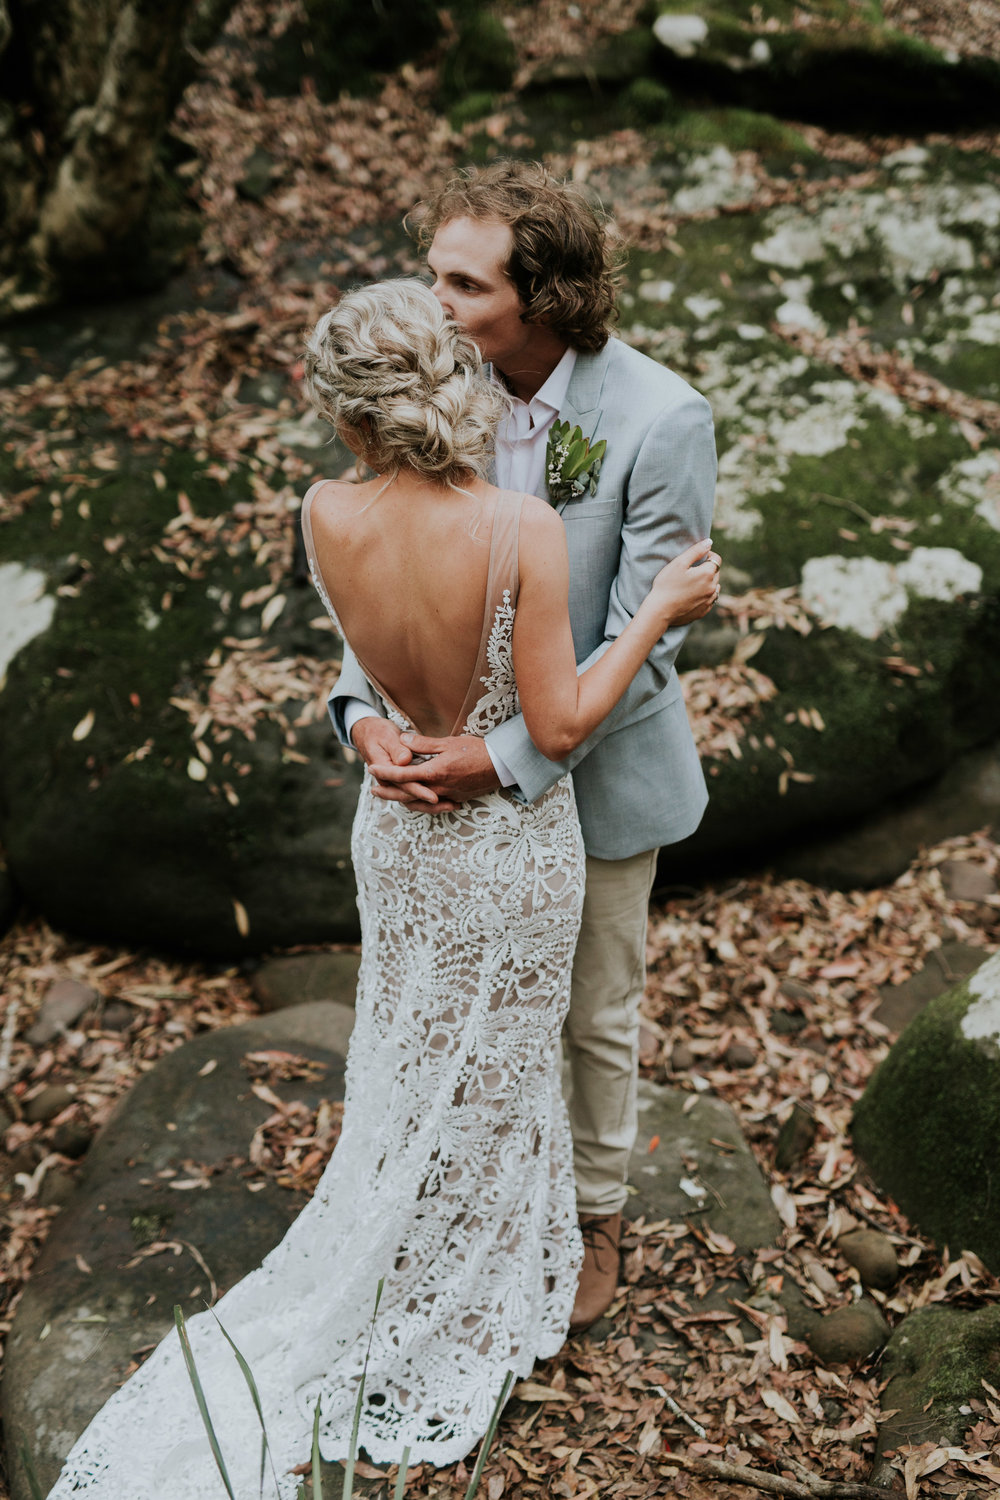 Jesse+Matt+Kangaroo+Valley+Wildwood+Boho+Relaxed+wedding+-150.jpg